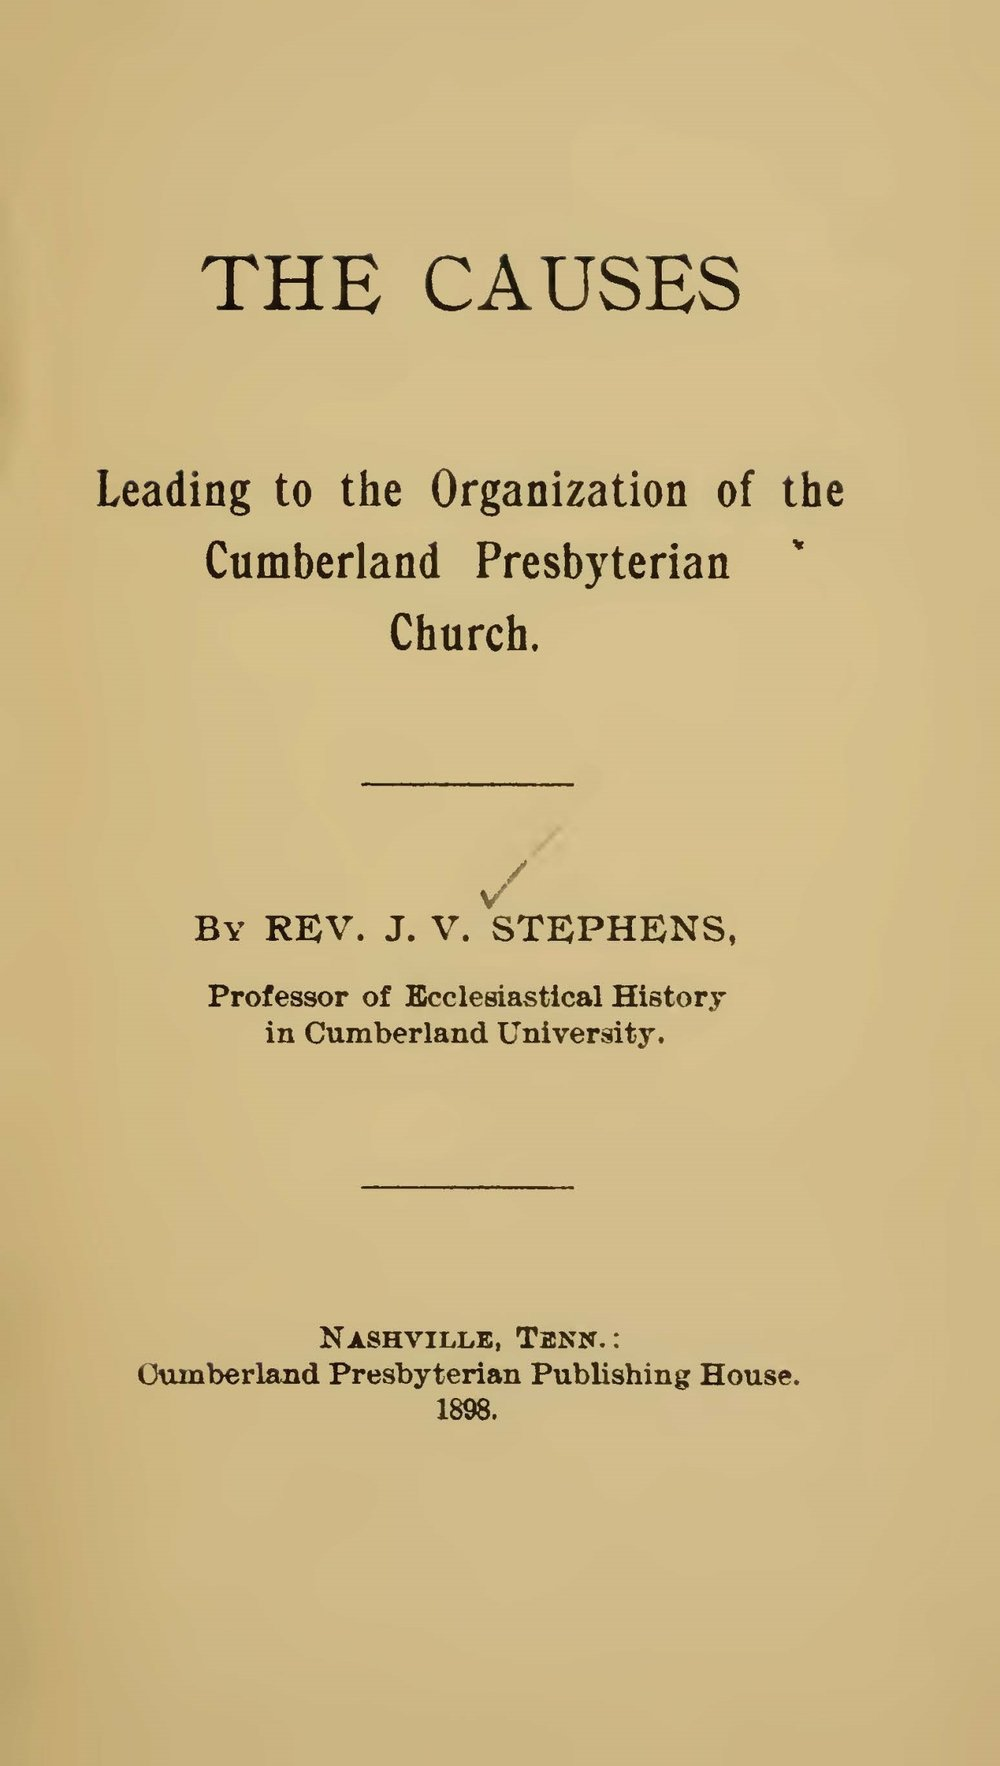 Vant Stephens, Sr., John, The Causes Leading to the Organization of the Cumberland Presbyterian Church Title Page.jpg